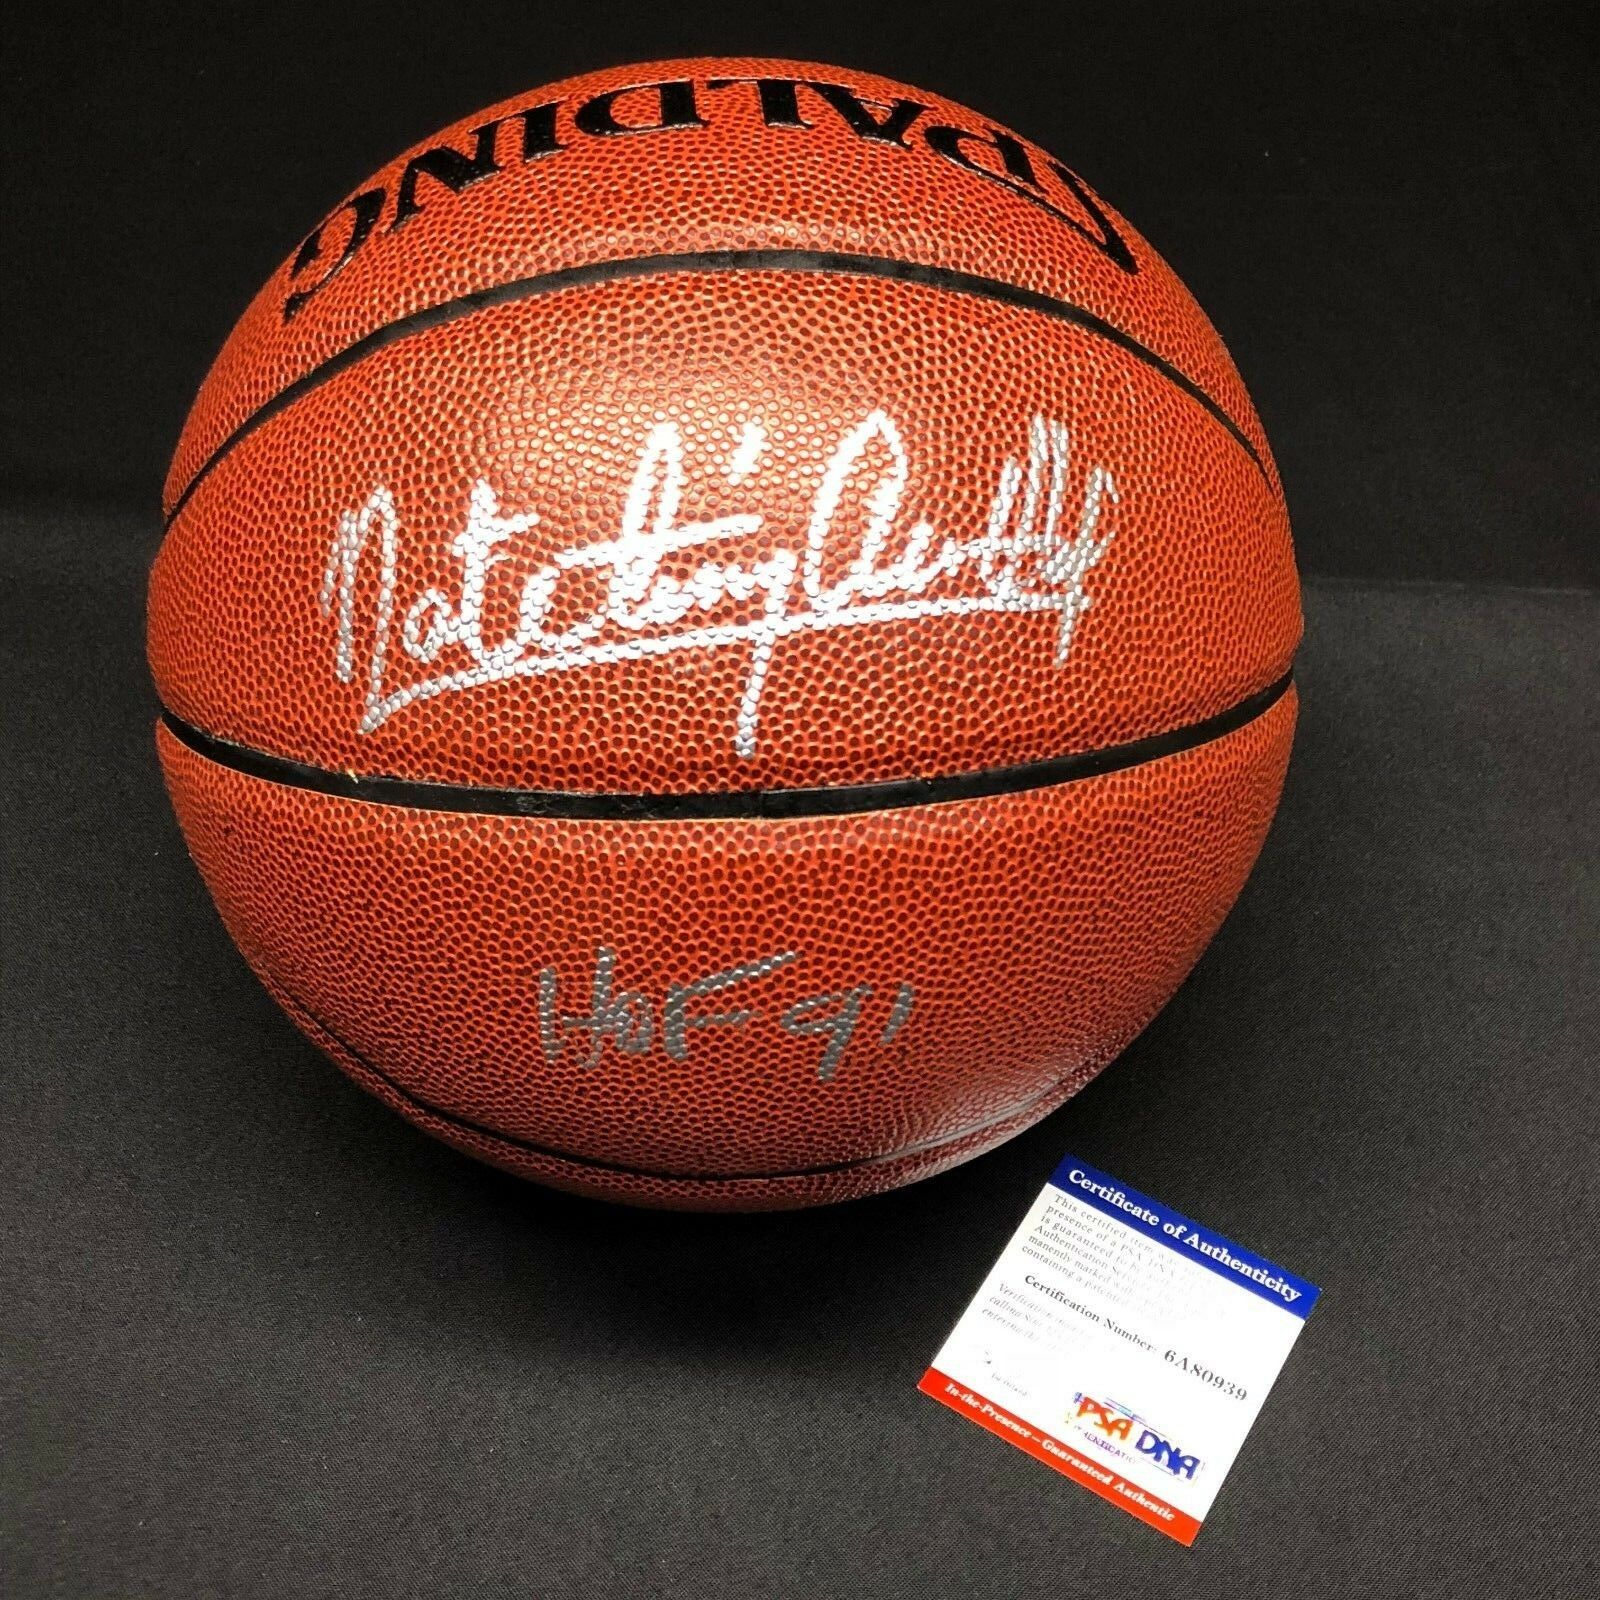 Nate Tiny Archibald Signed I/O Basketball